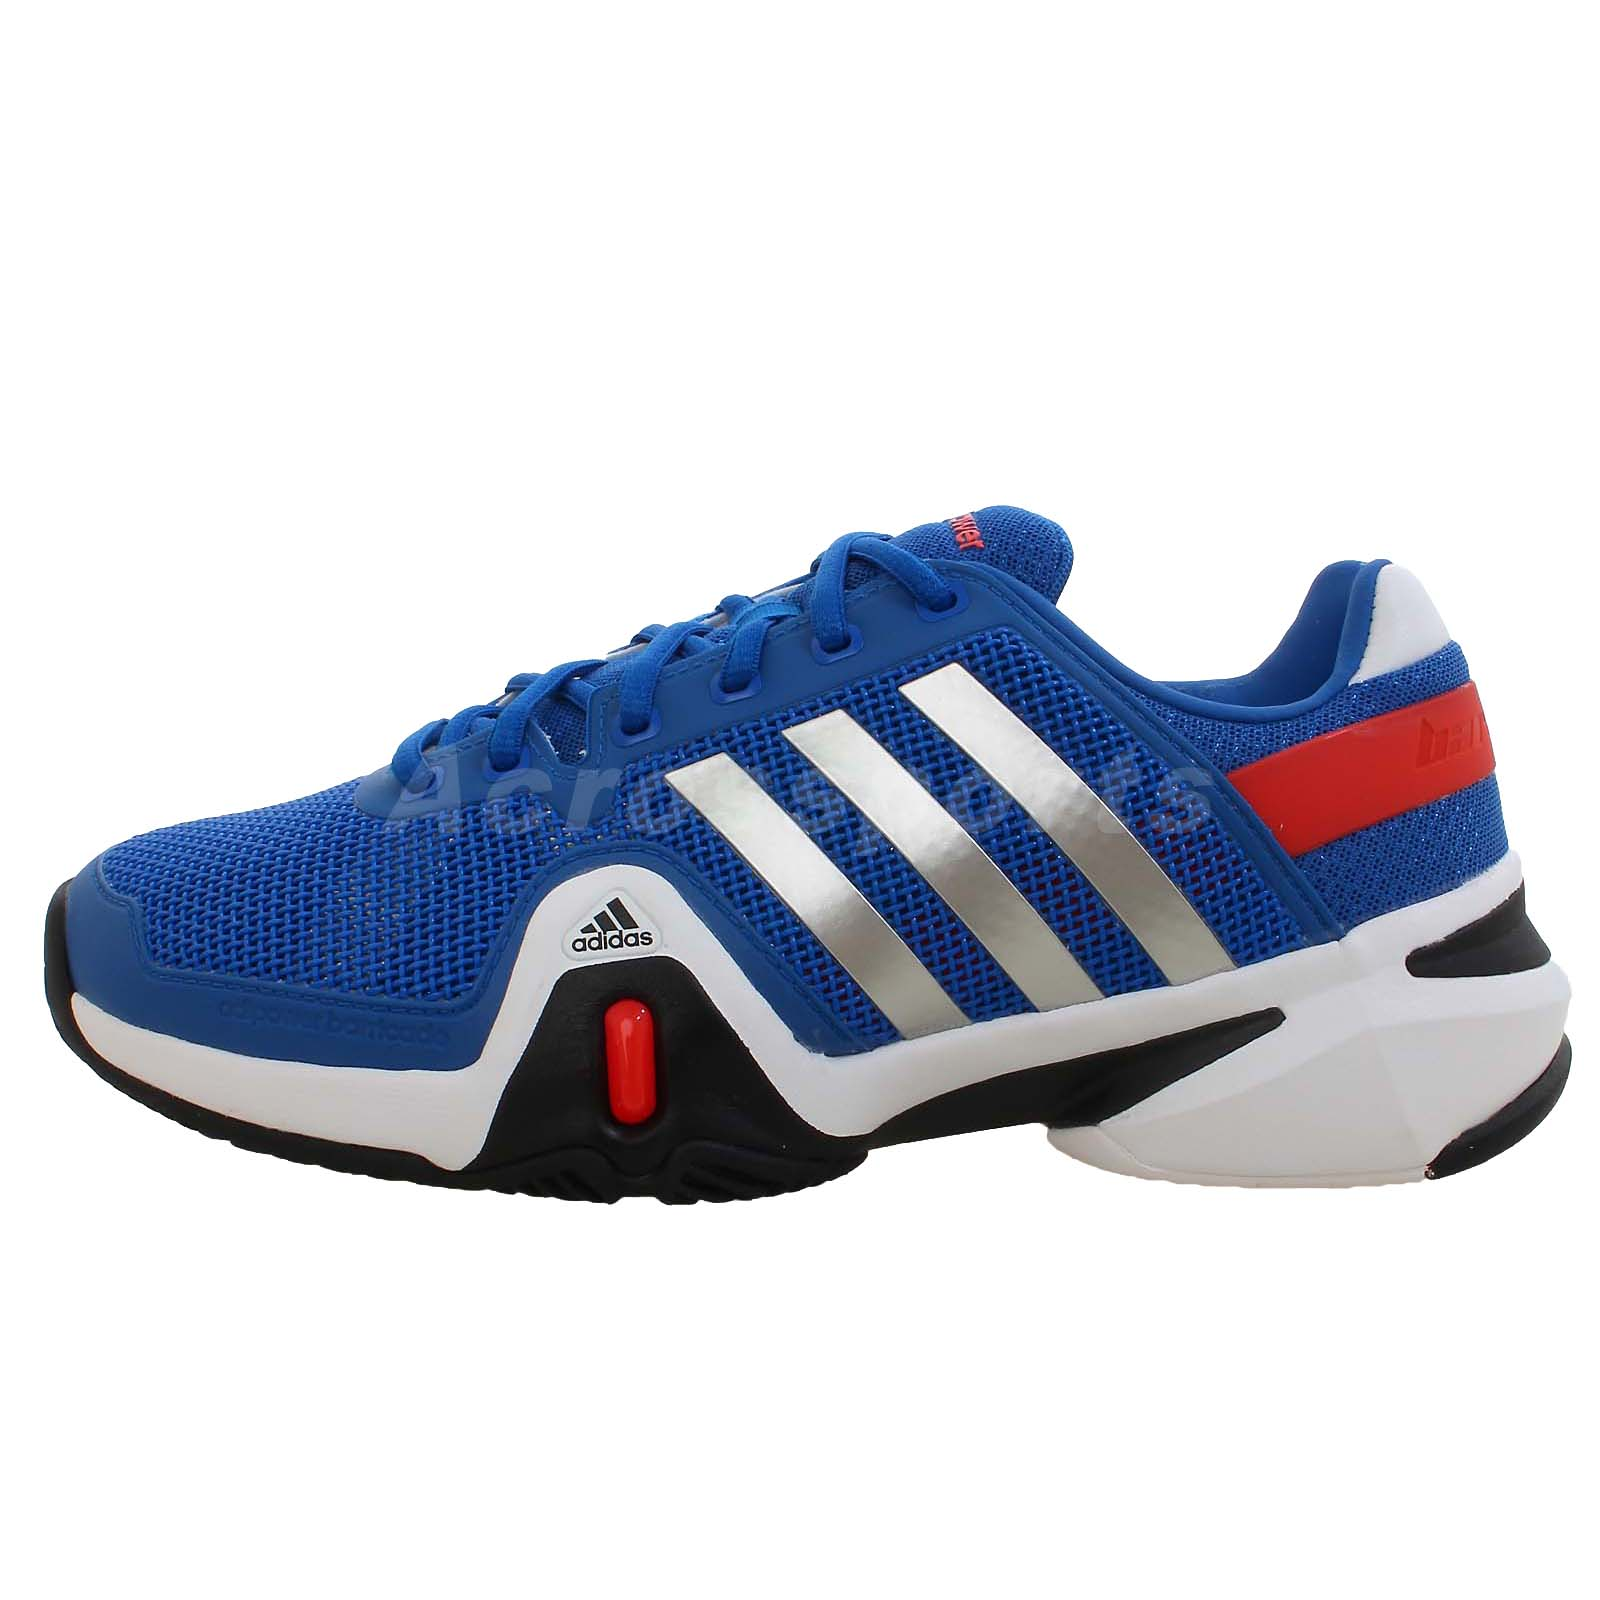 Shoes For Men 2013 Adidas Adidas Adipower...